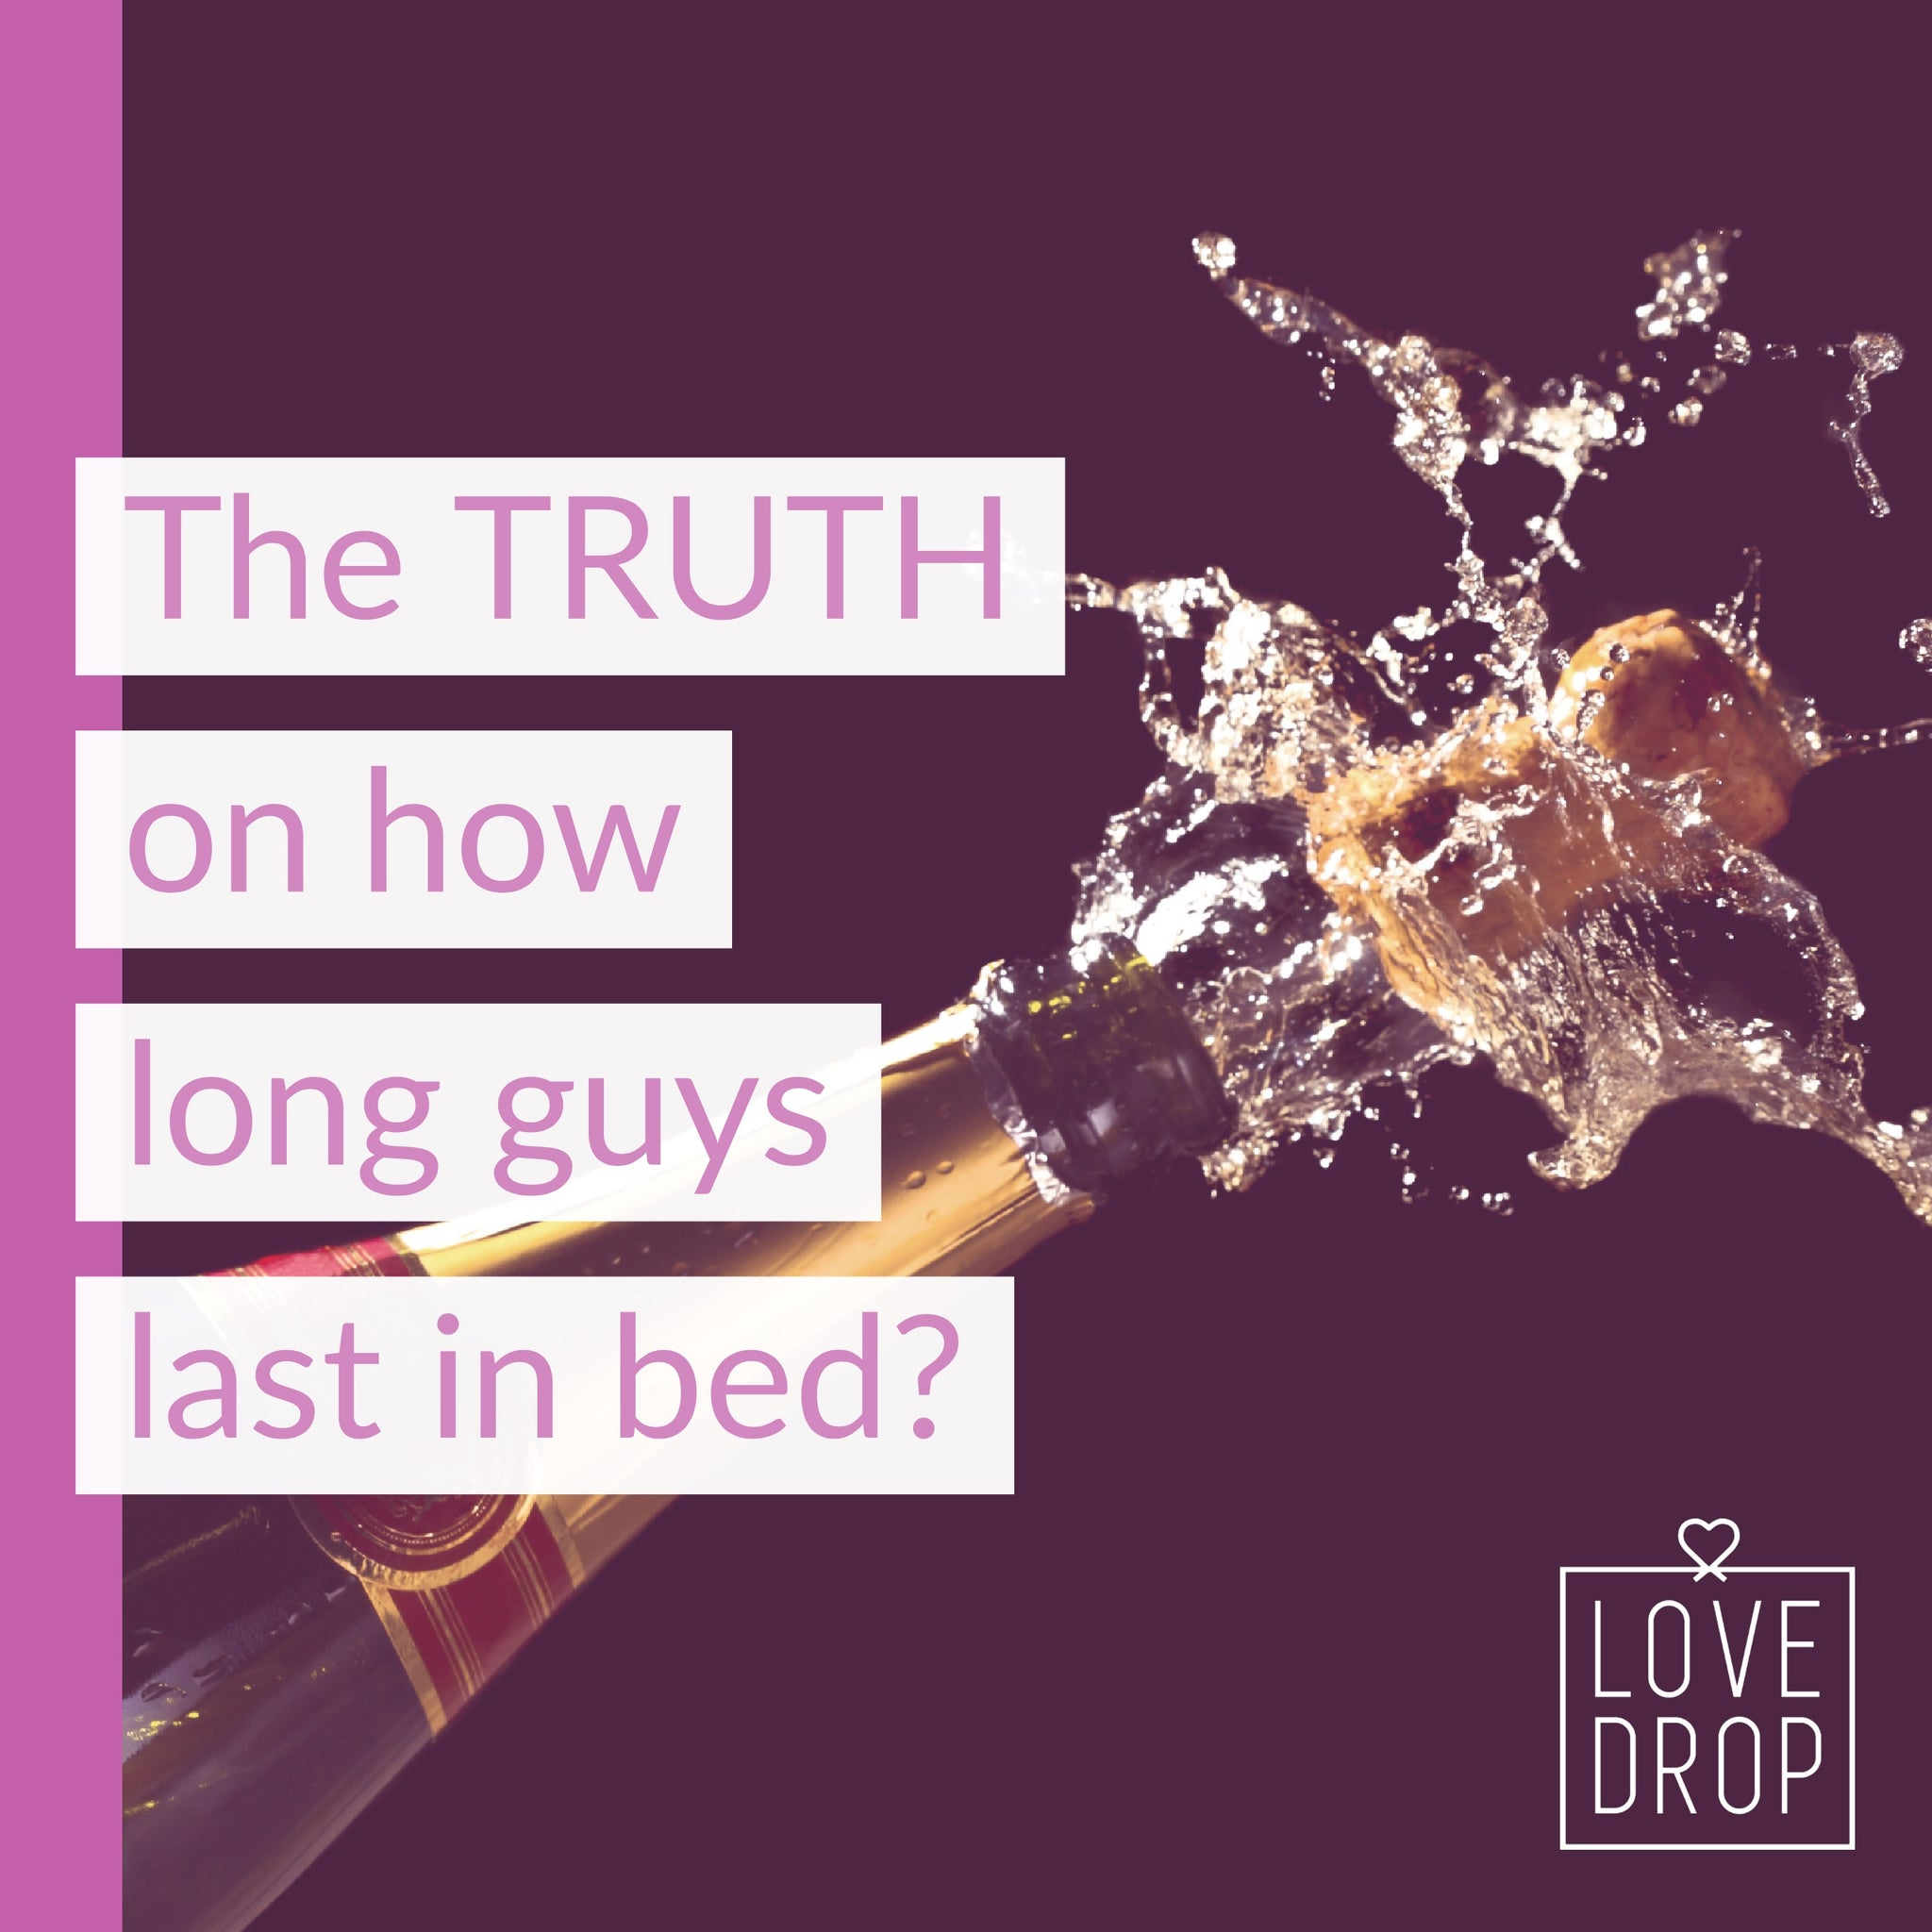 The TRUTH on how long guys last in bed?